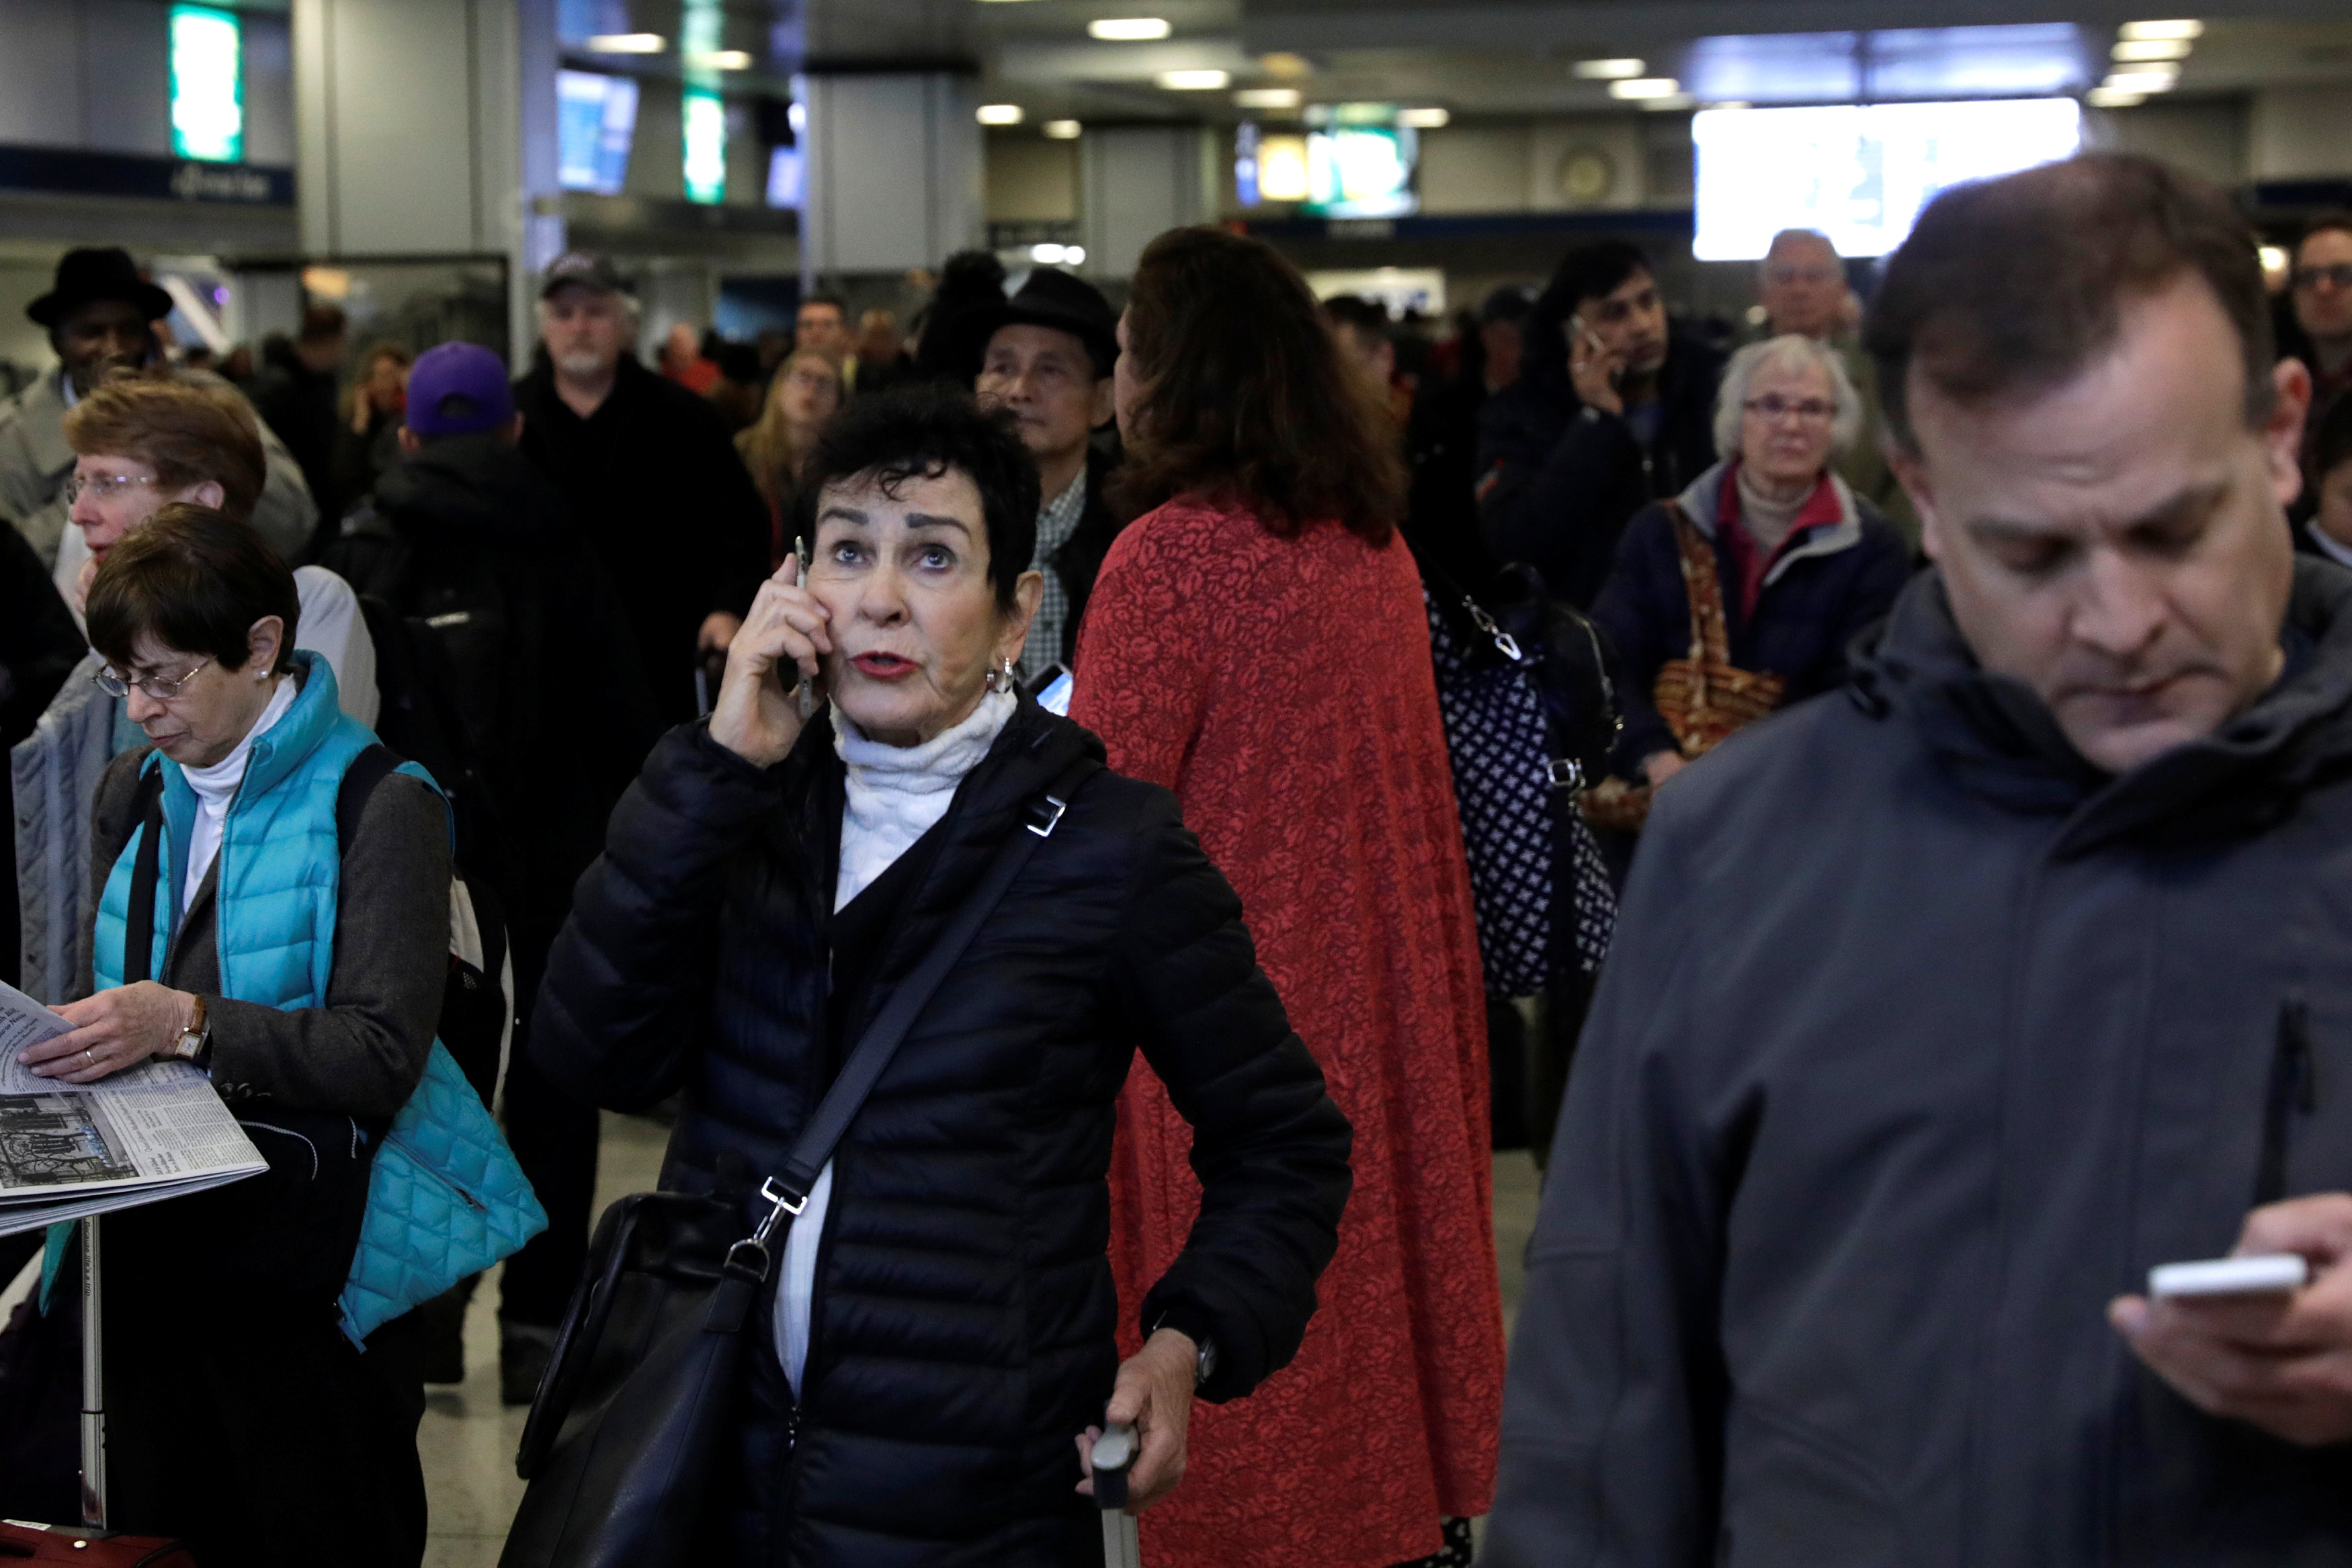 People stand delayed at Pennsylvania Station after an incident in the Manhattan borough of New York March 24, 2017. (REUTERS/Lucas Jackson)